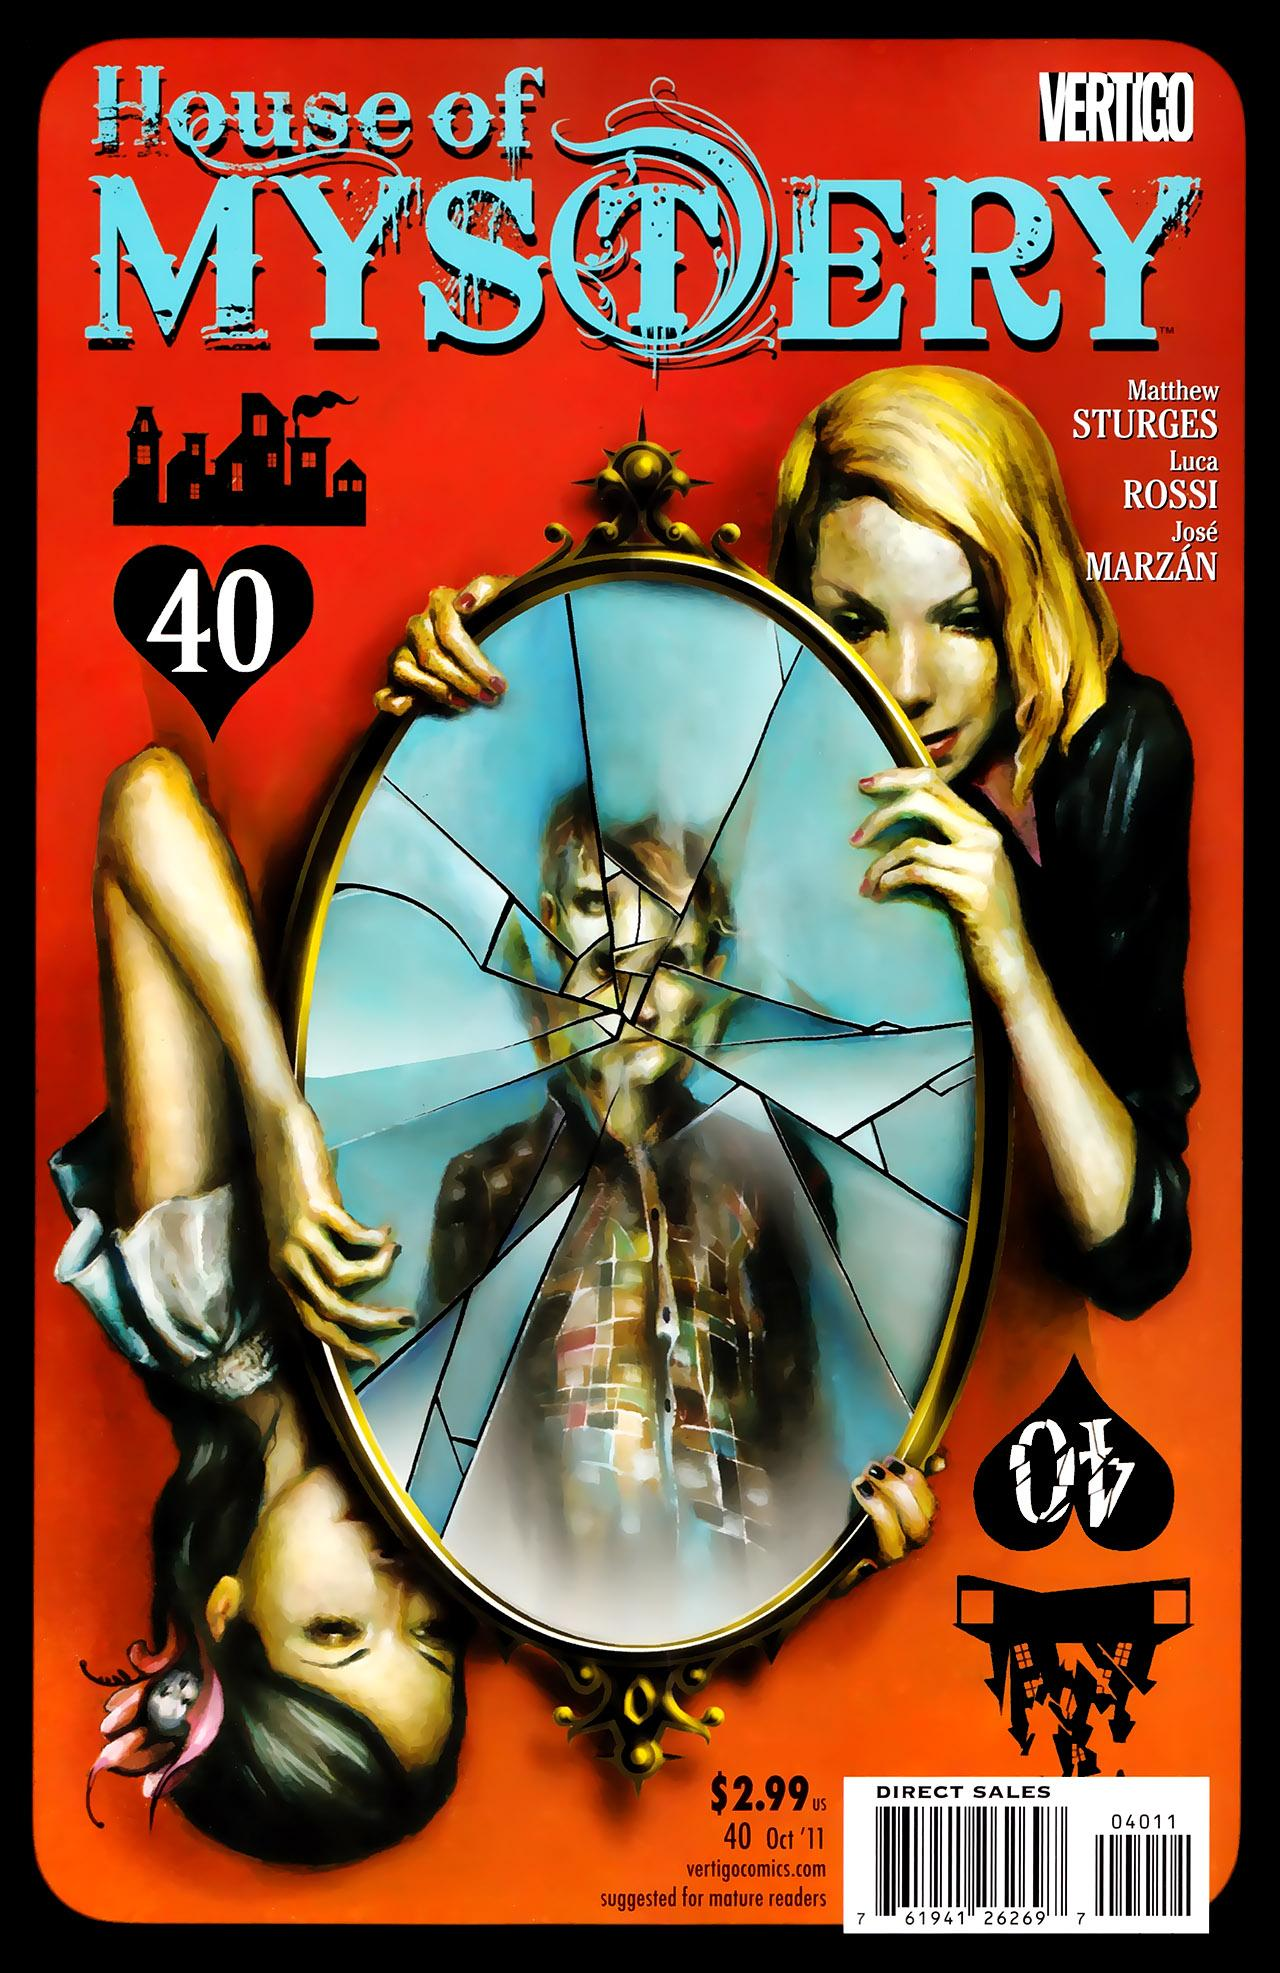 House of Mystery #40 (2011) free download